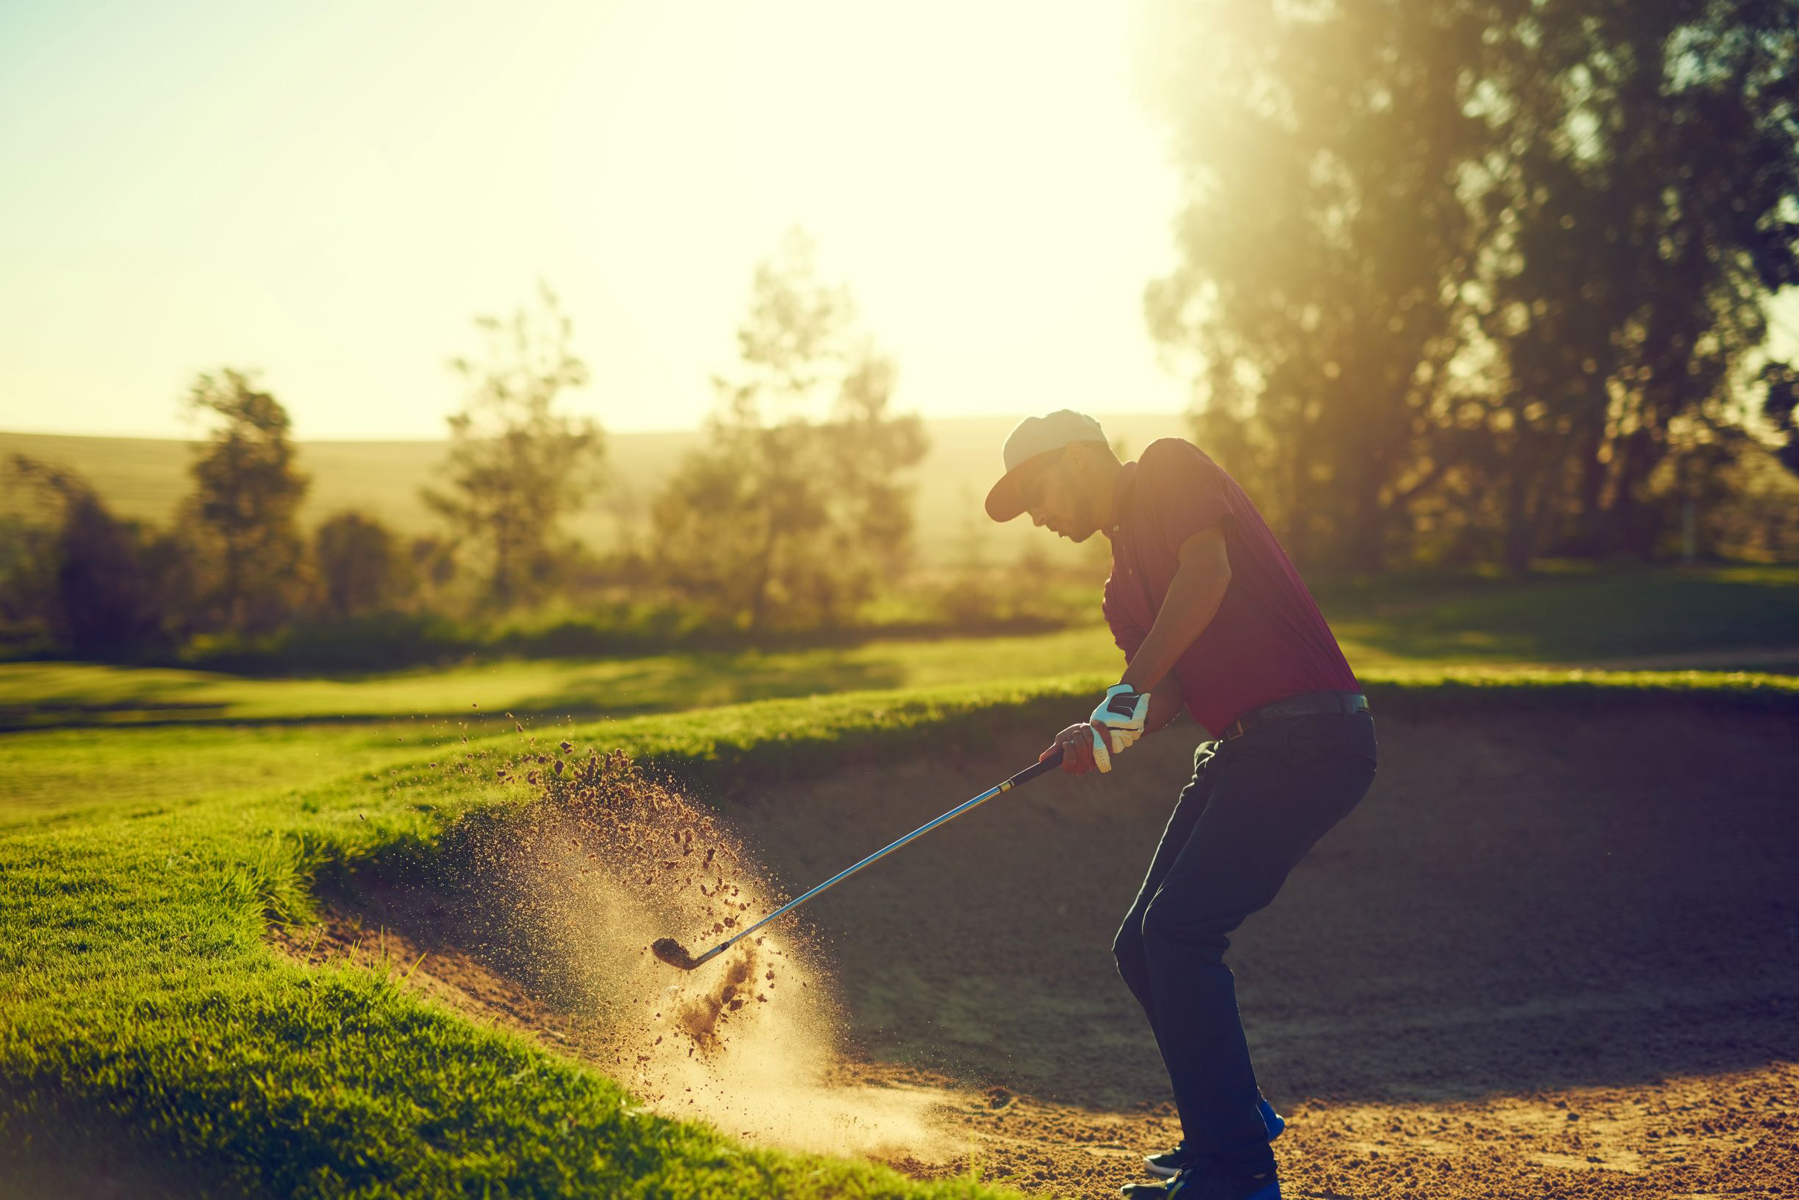 275/Stock_Photos/Home_page_golfer_4-673304422-web.jpg